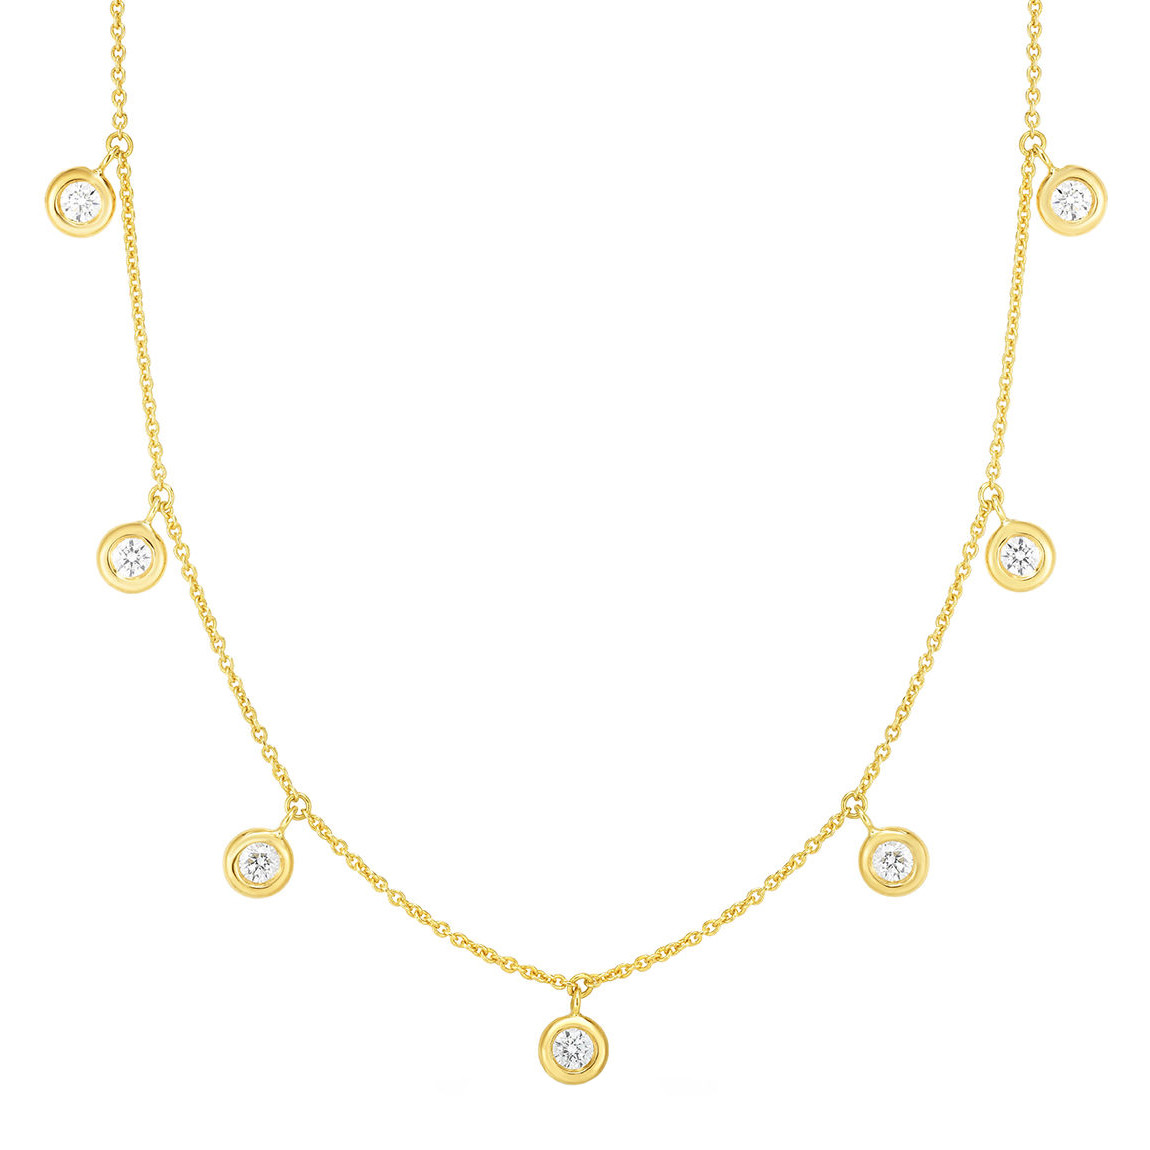 18k Yellow Gold & Seven Diamond Drop Chain Necklace